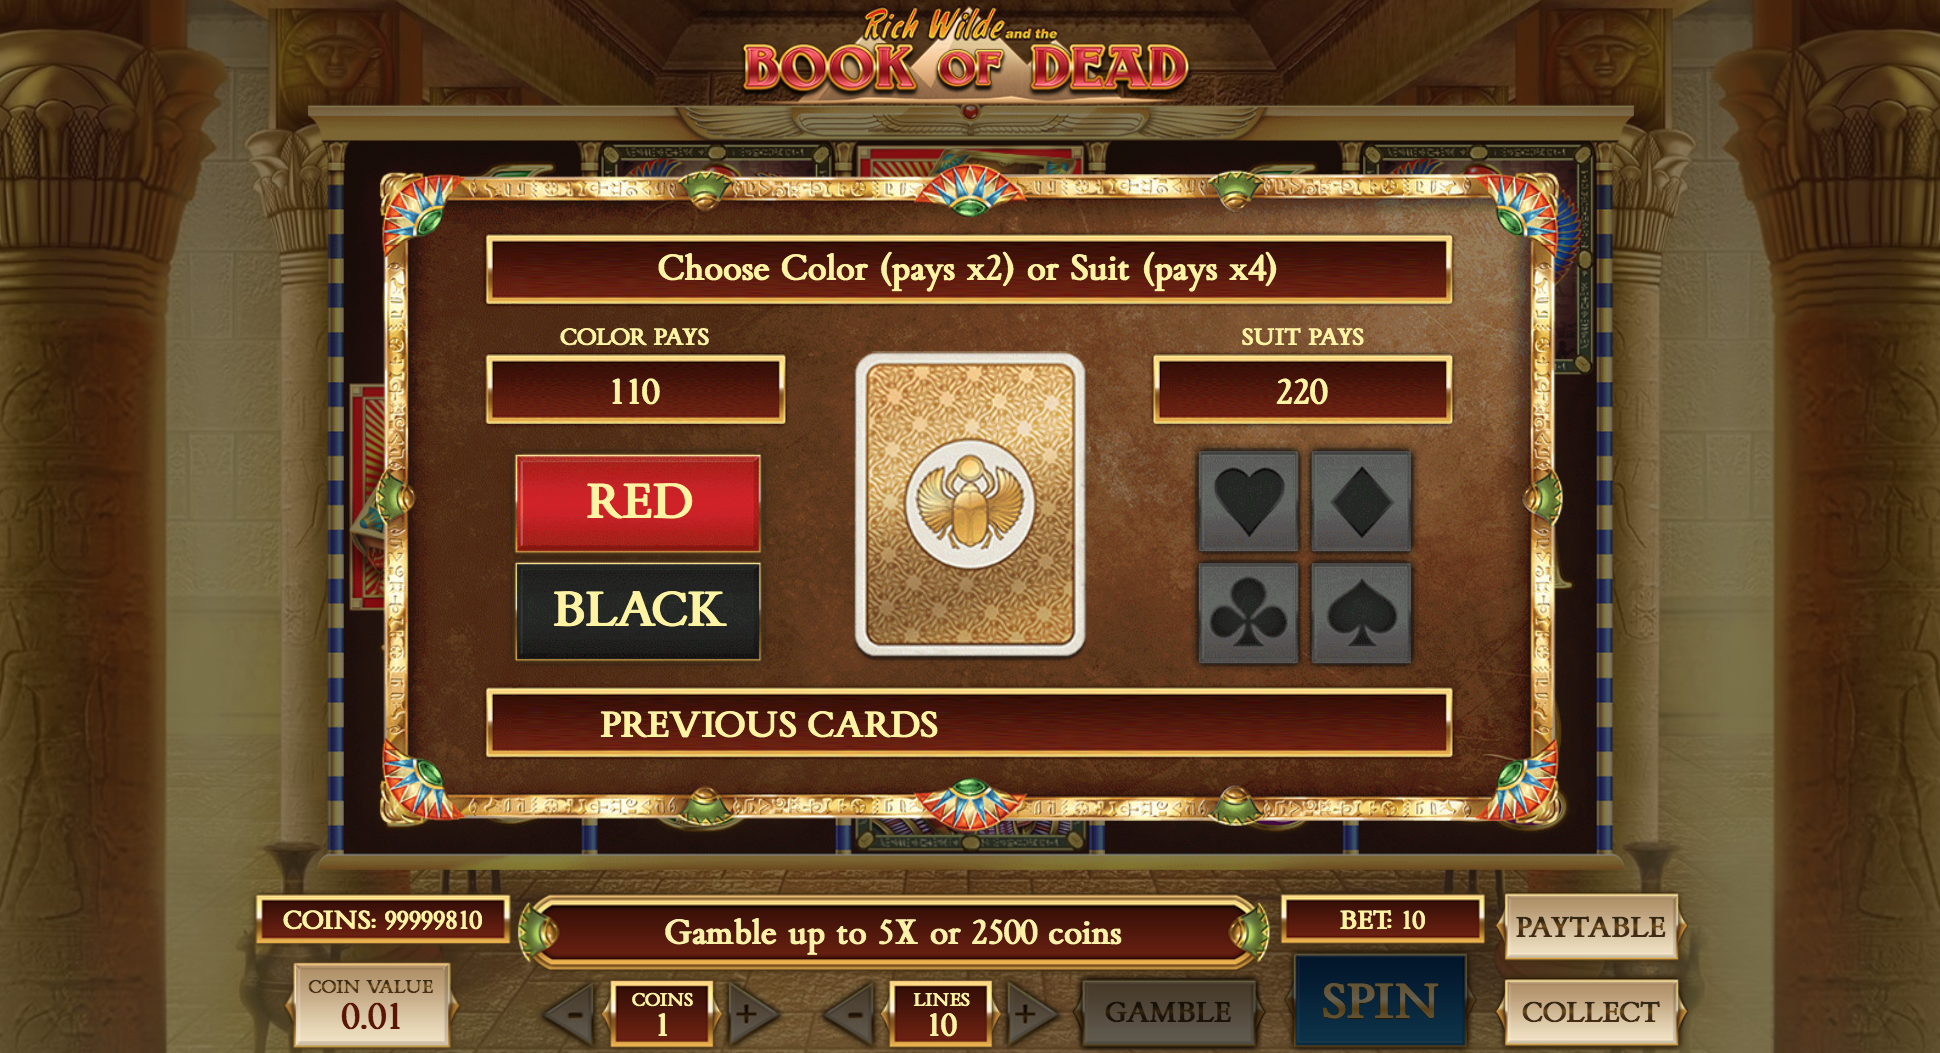 book of dead base game gamble feature